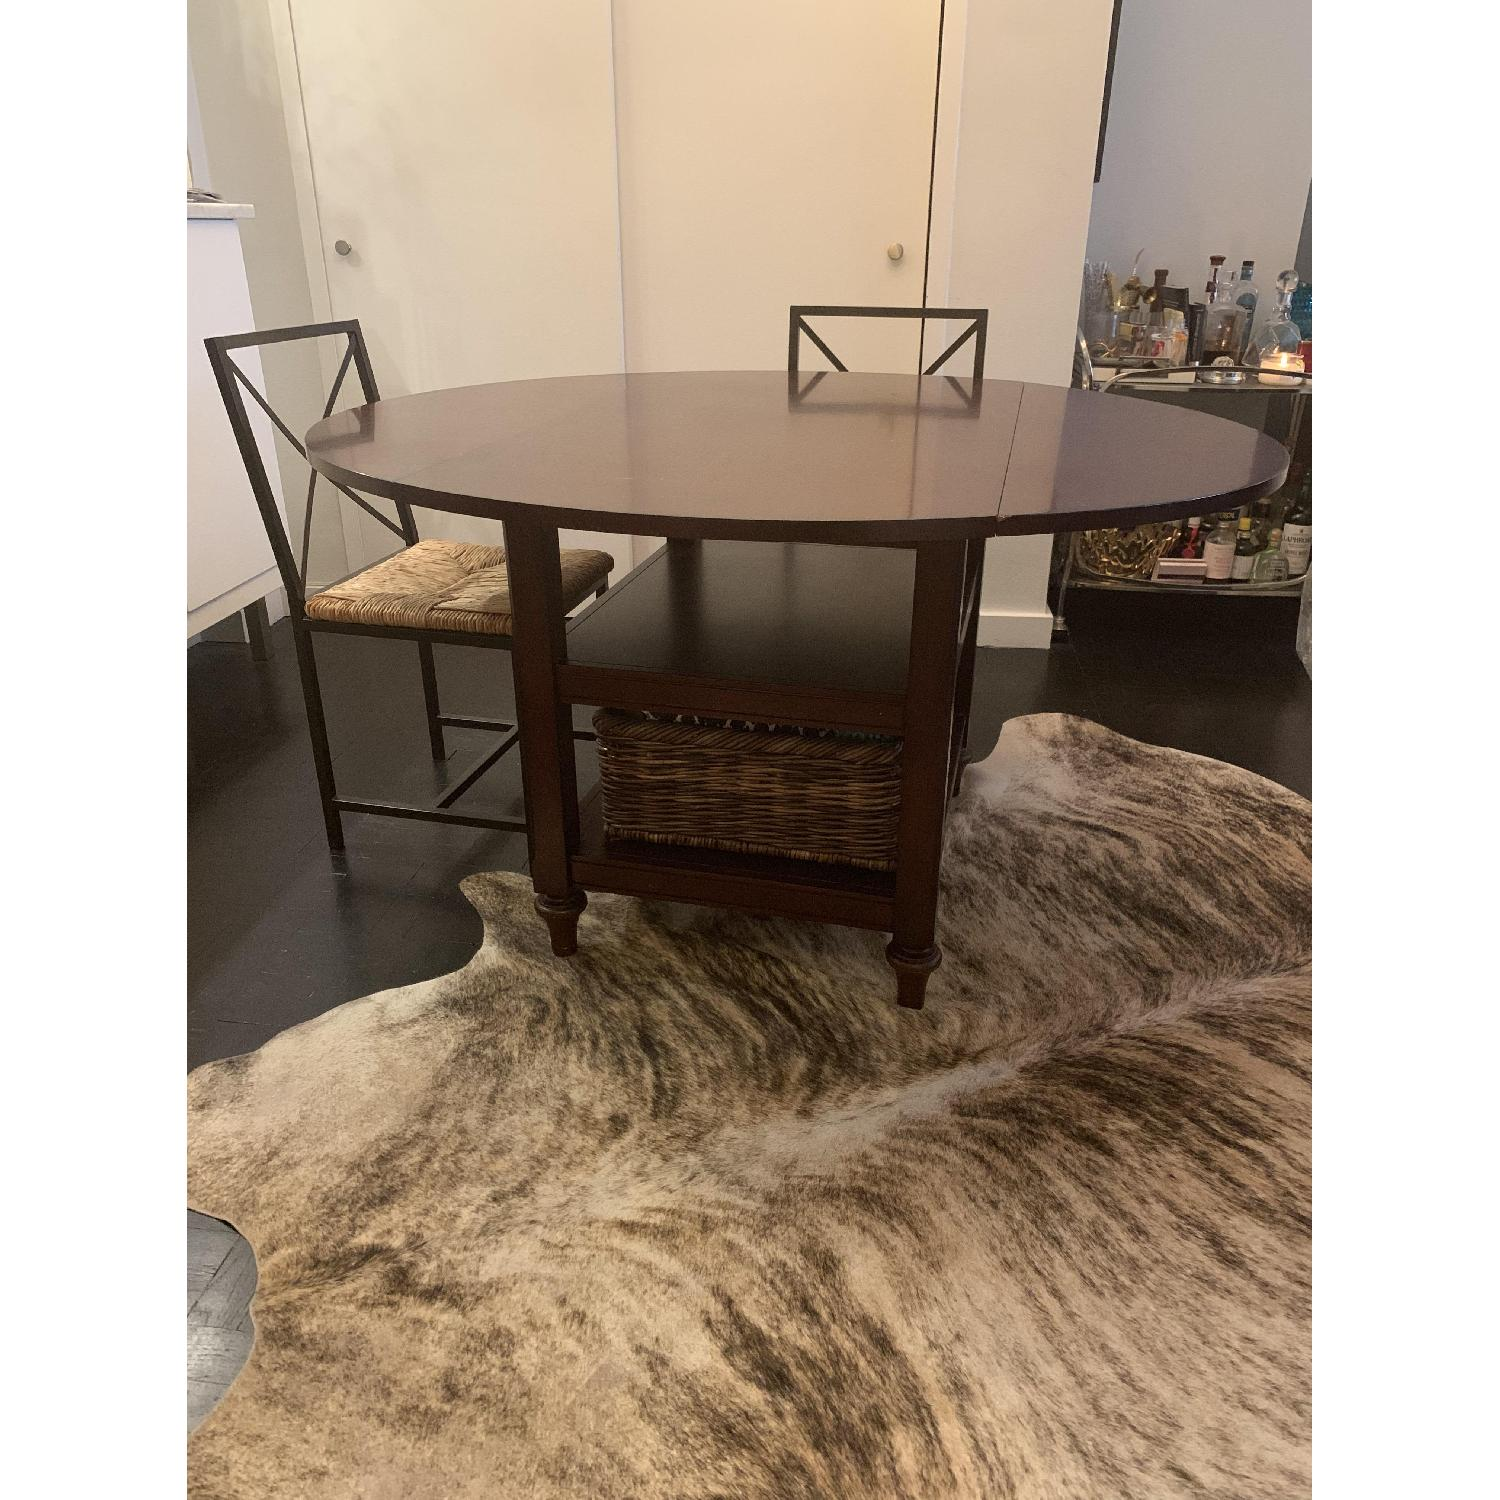 Pottery Barn Shayne Drop Leaf Kitchen Table w/ Basket